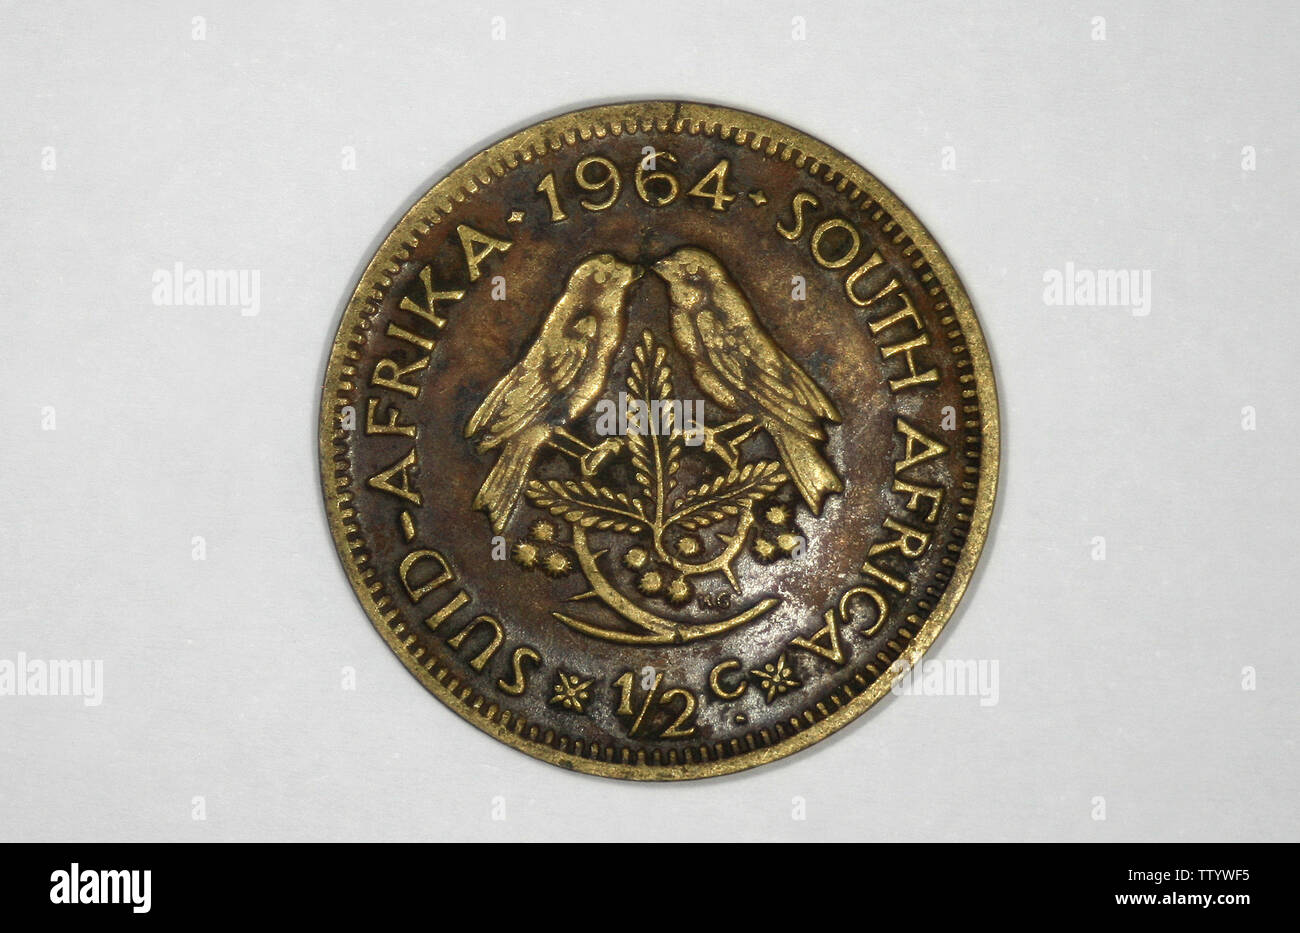 South Africa ½ cent, 1964 - Stock Image